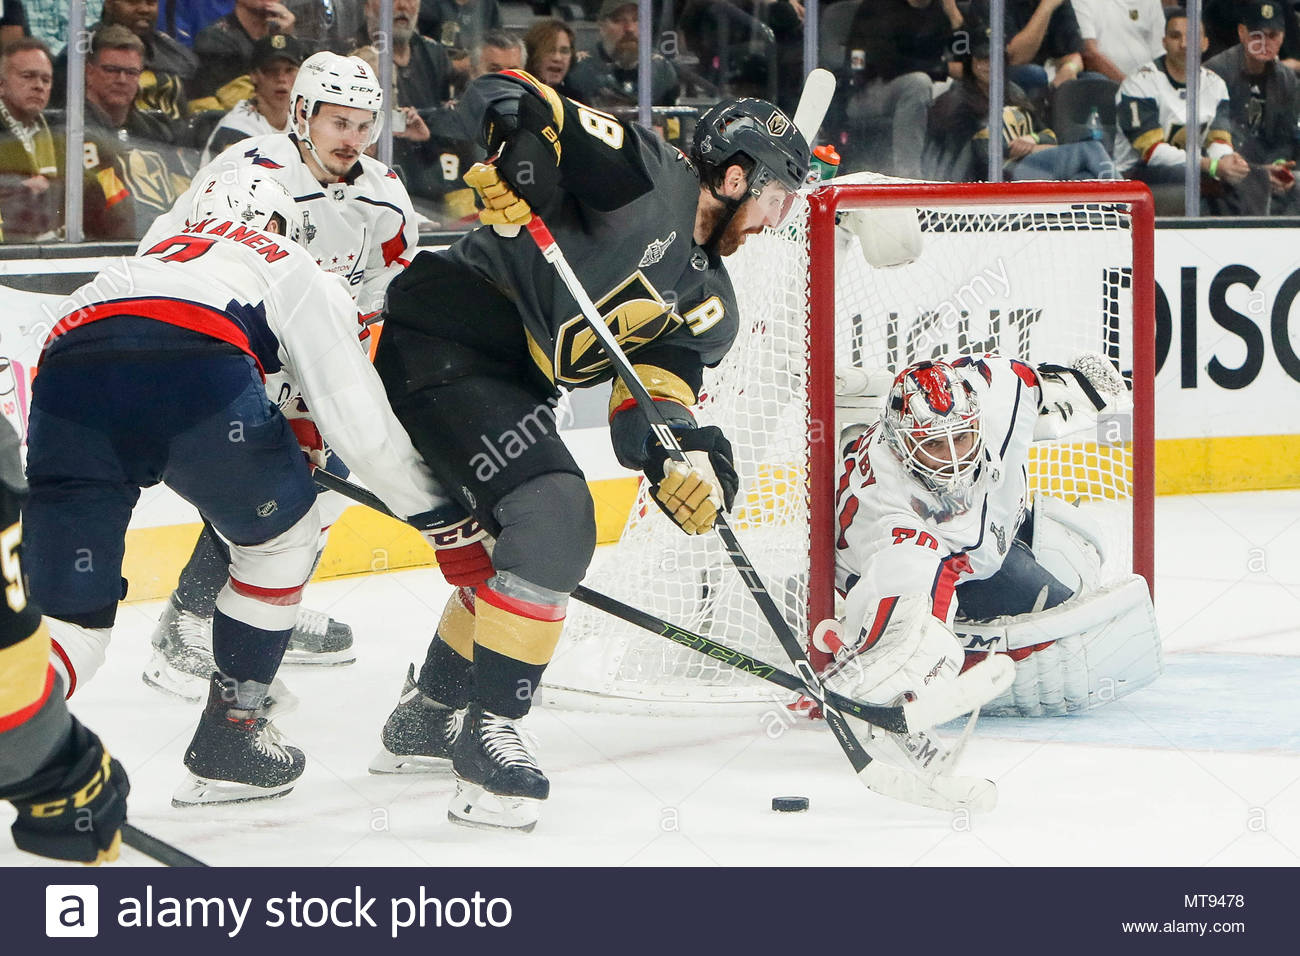 968fe3025eb Nhl Stock Photos   Nhl Stock Images - Page 8 - Alamy